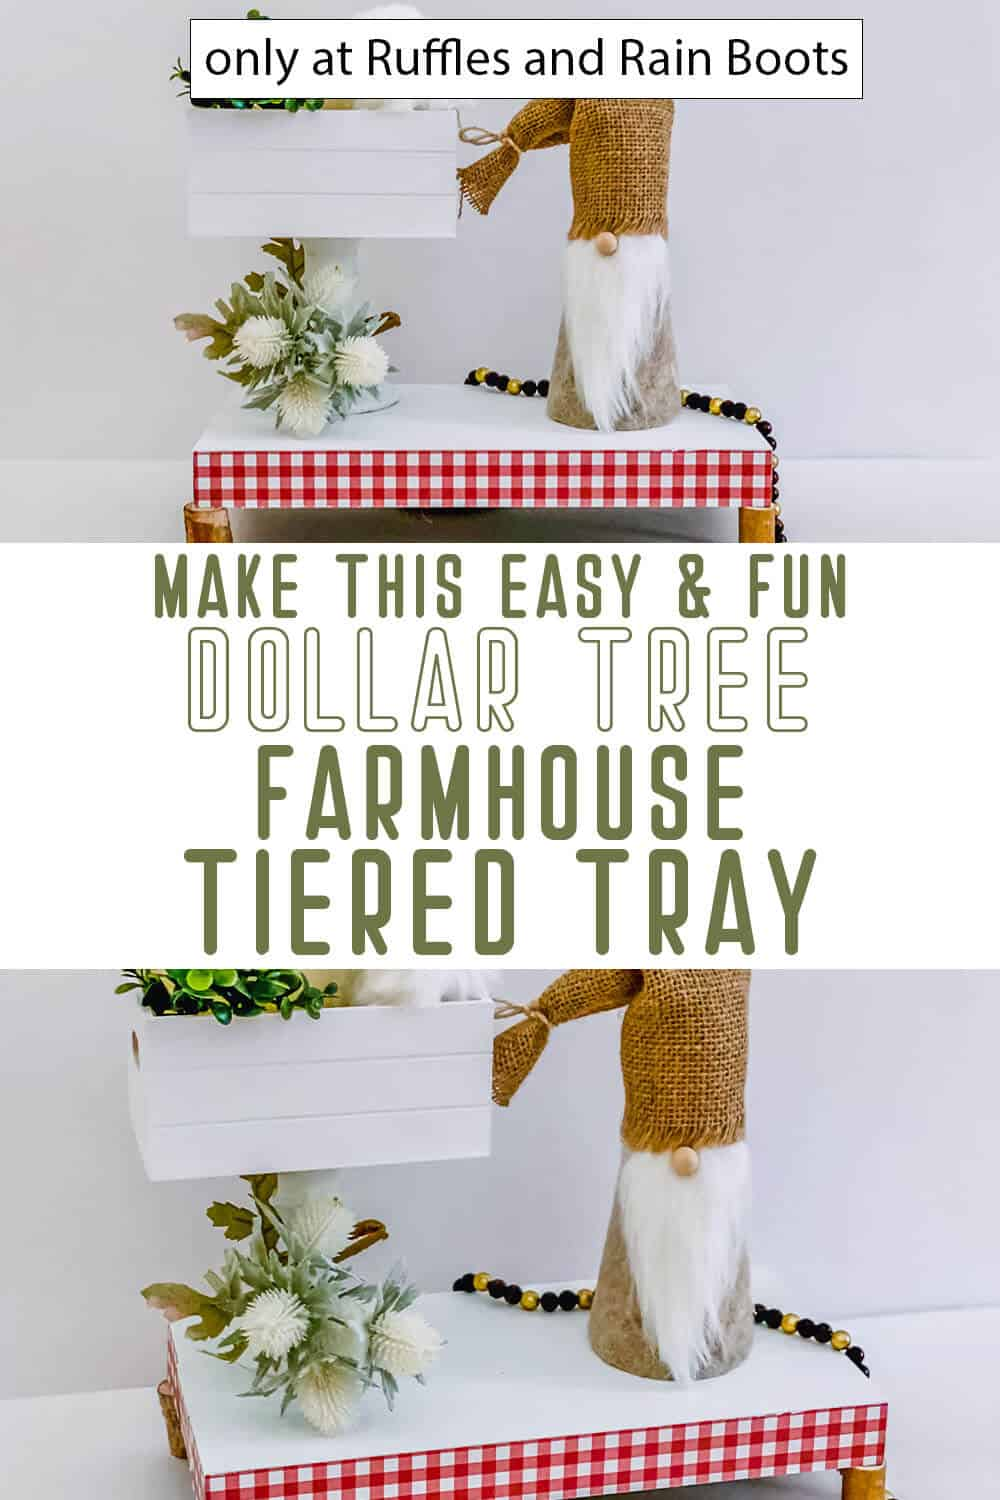 photo collage of dollar tree farmhouse tiered tray with text which reads make this easy & fun dollar tree farmhouse tiered tray